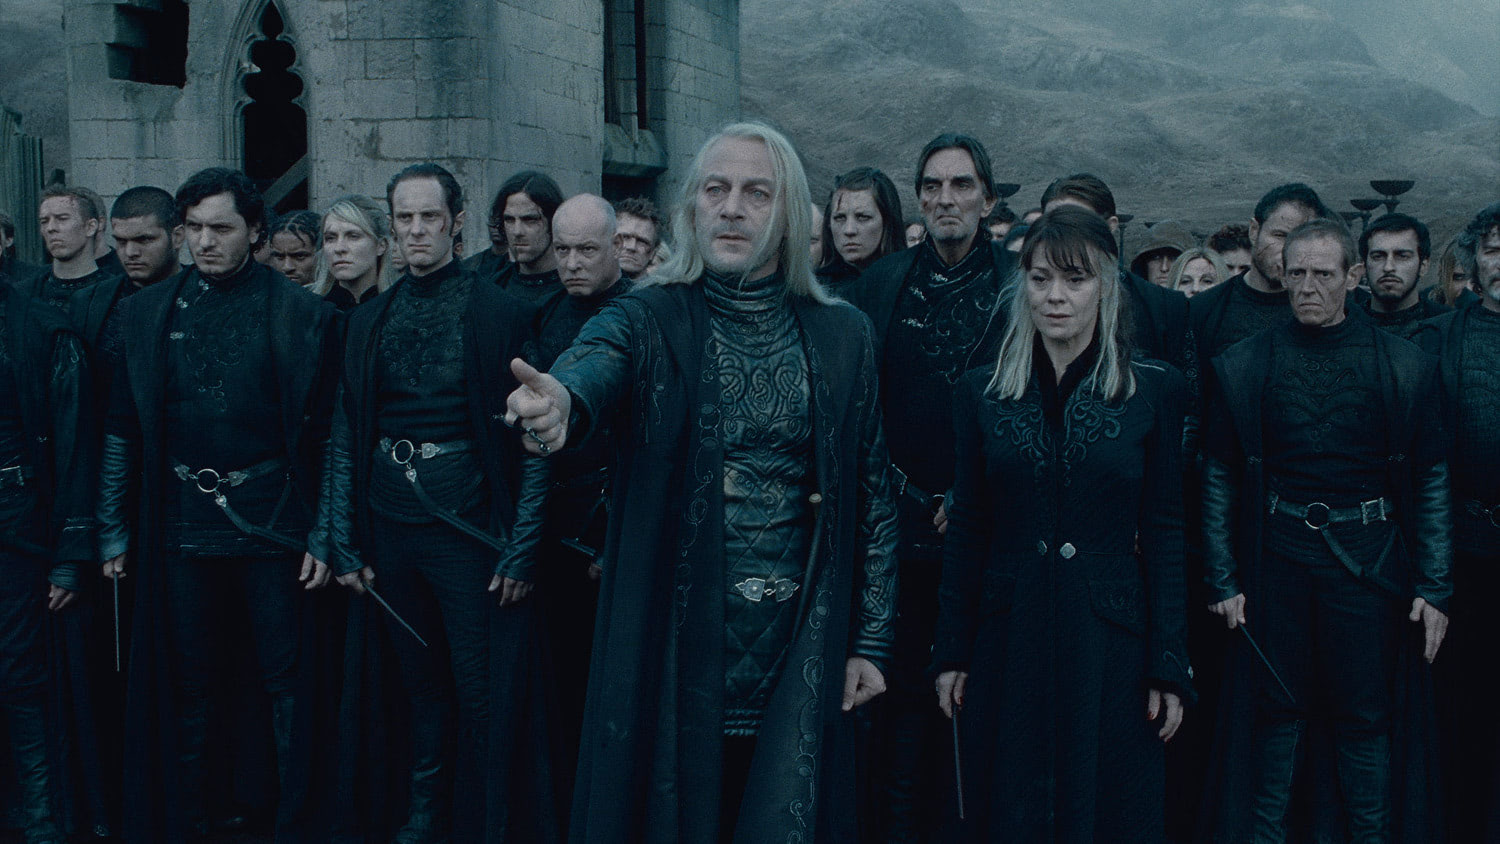 Lucius Malfoy beckons Draco